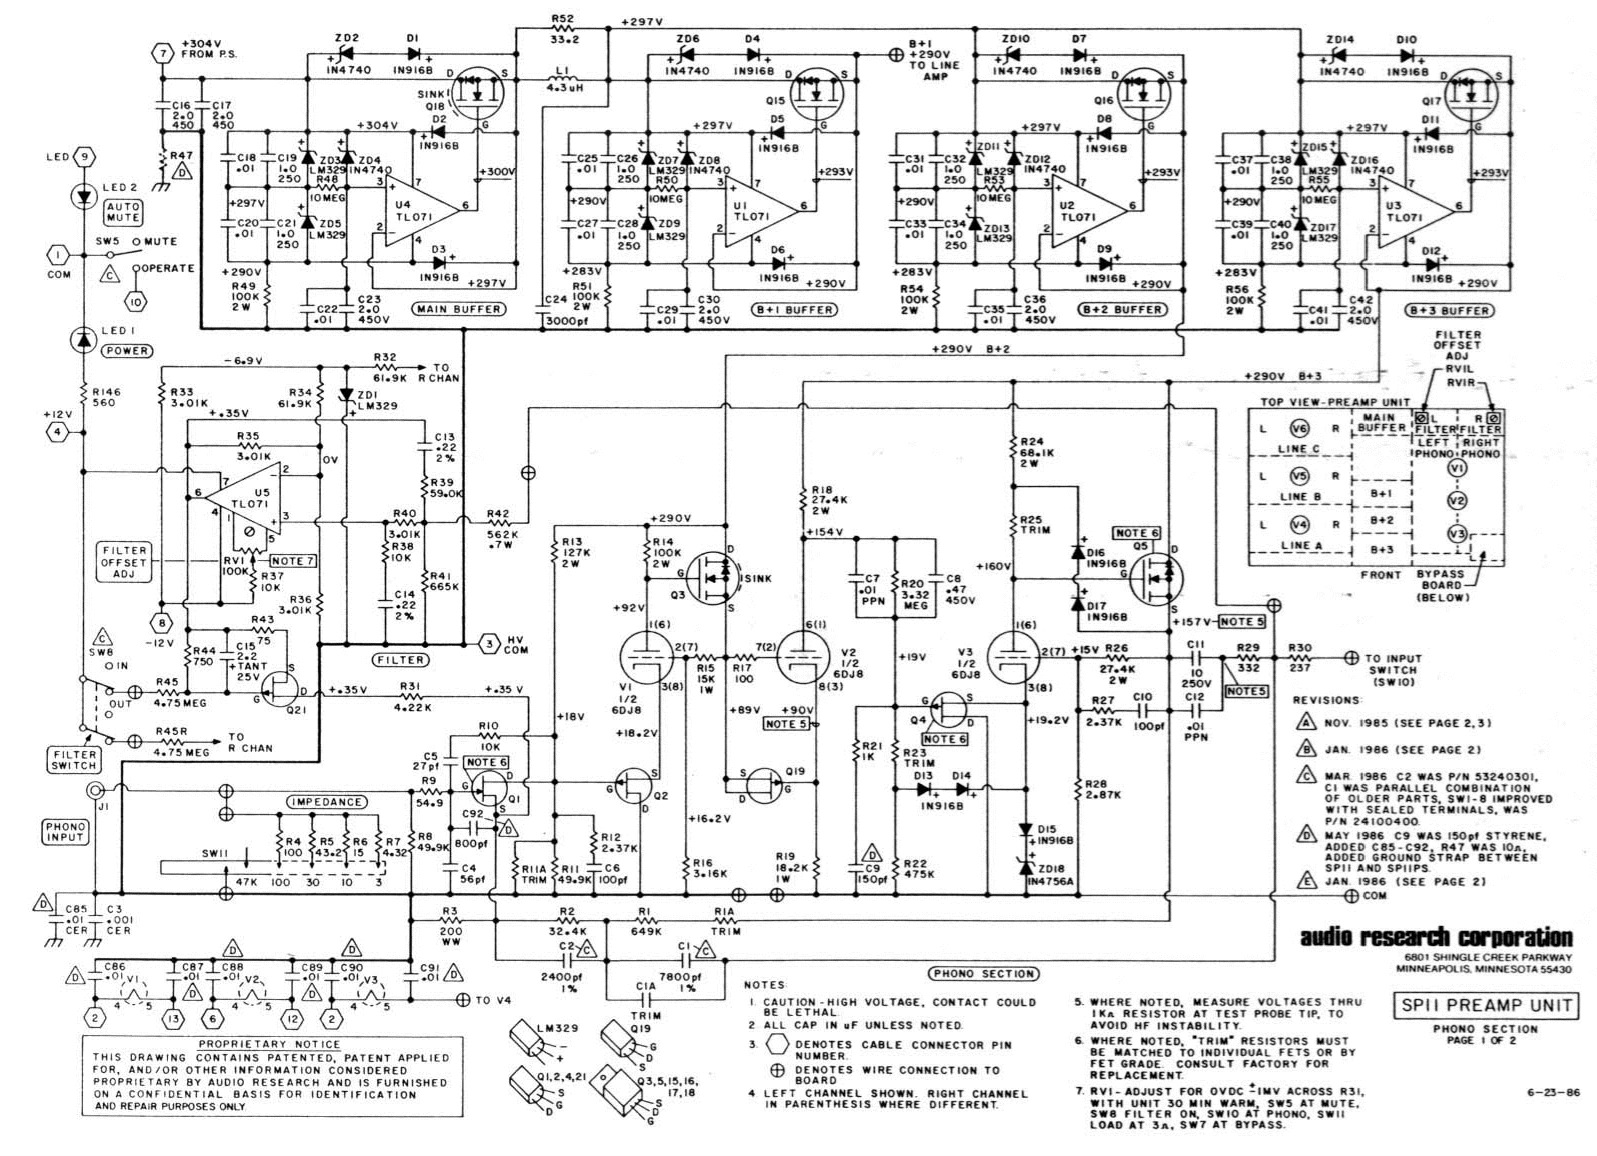 6dj8 Preamp Schematic